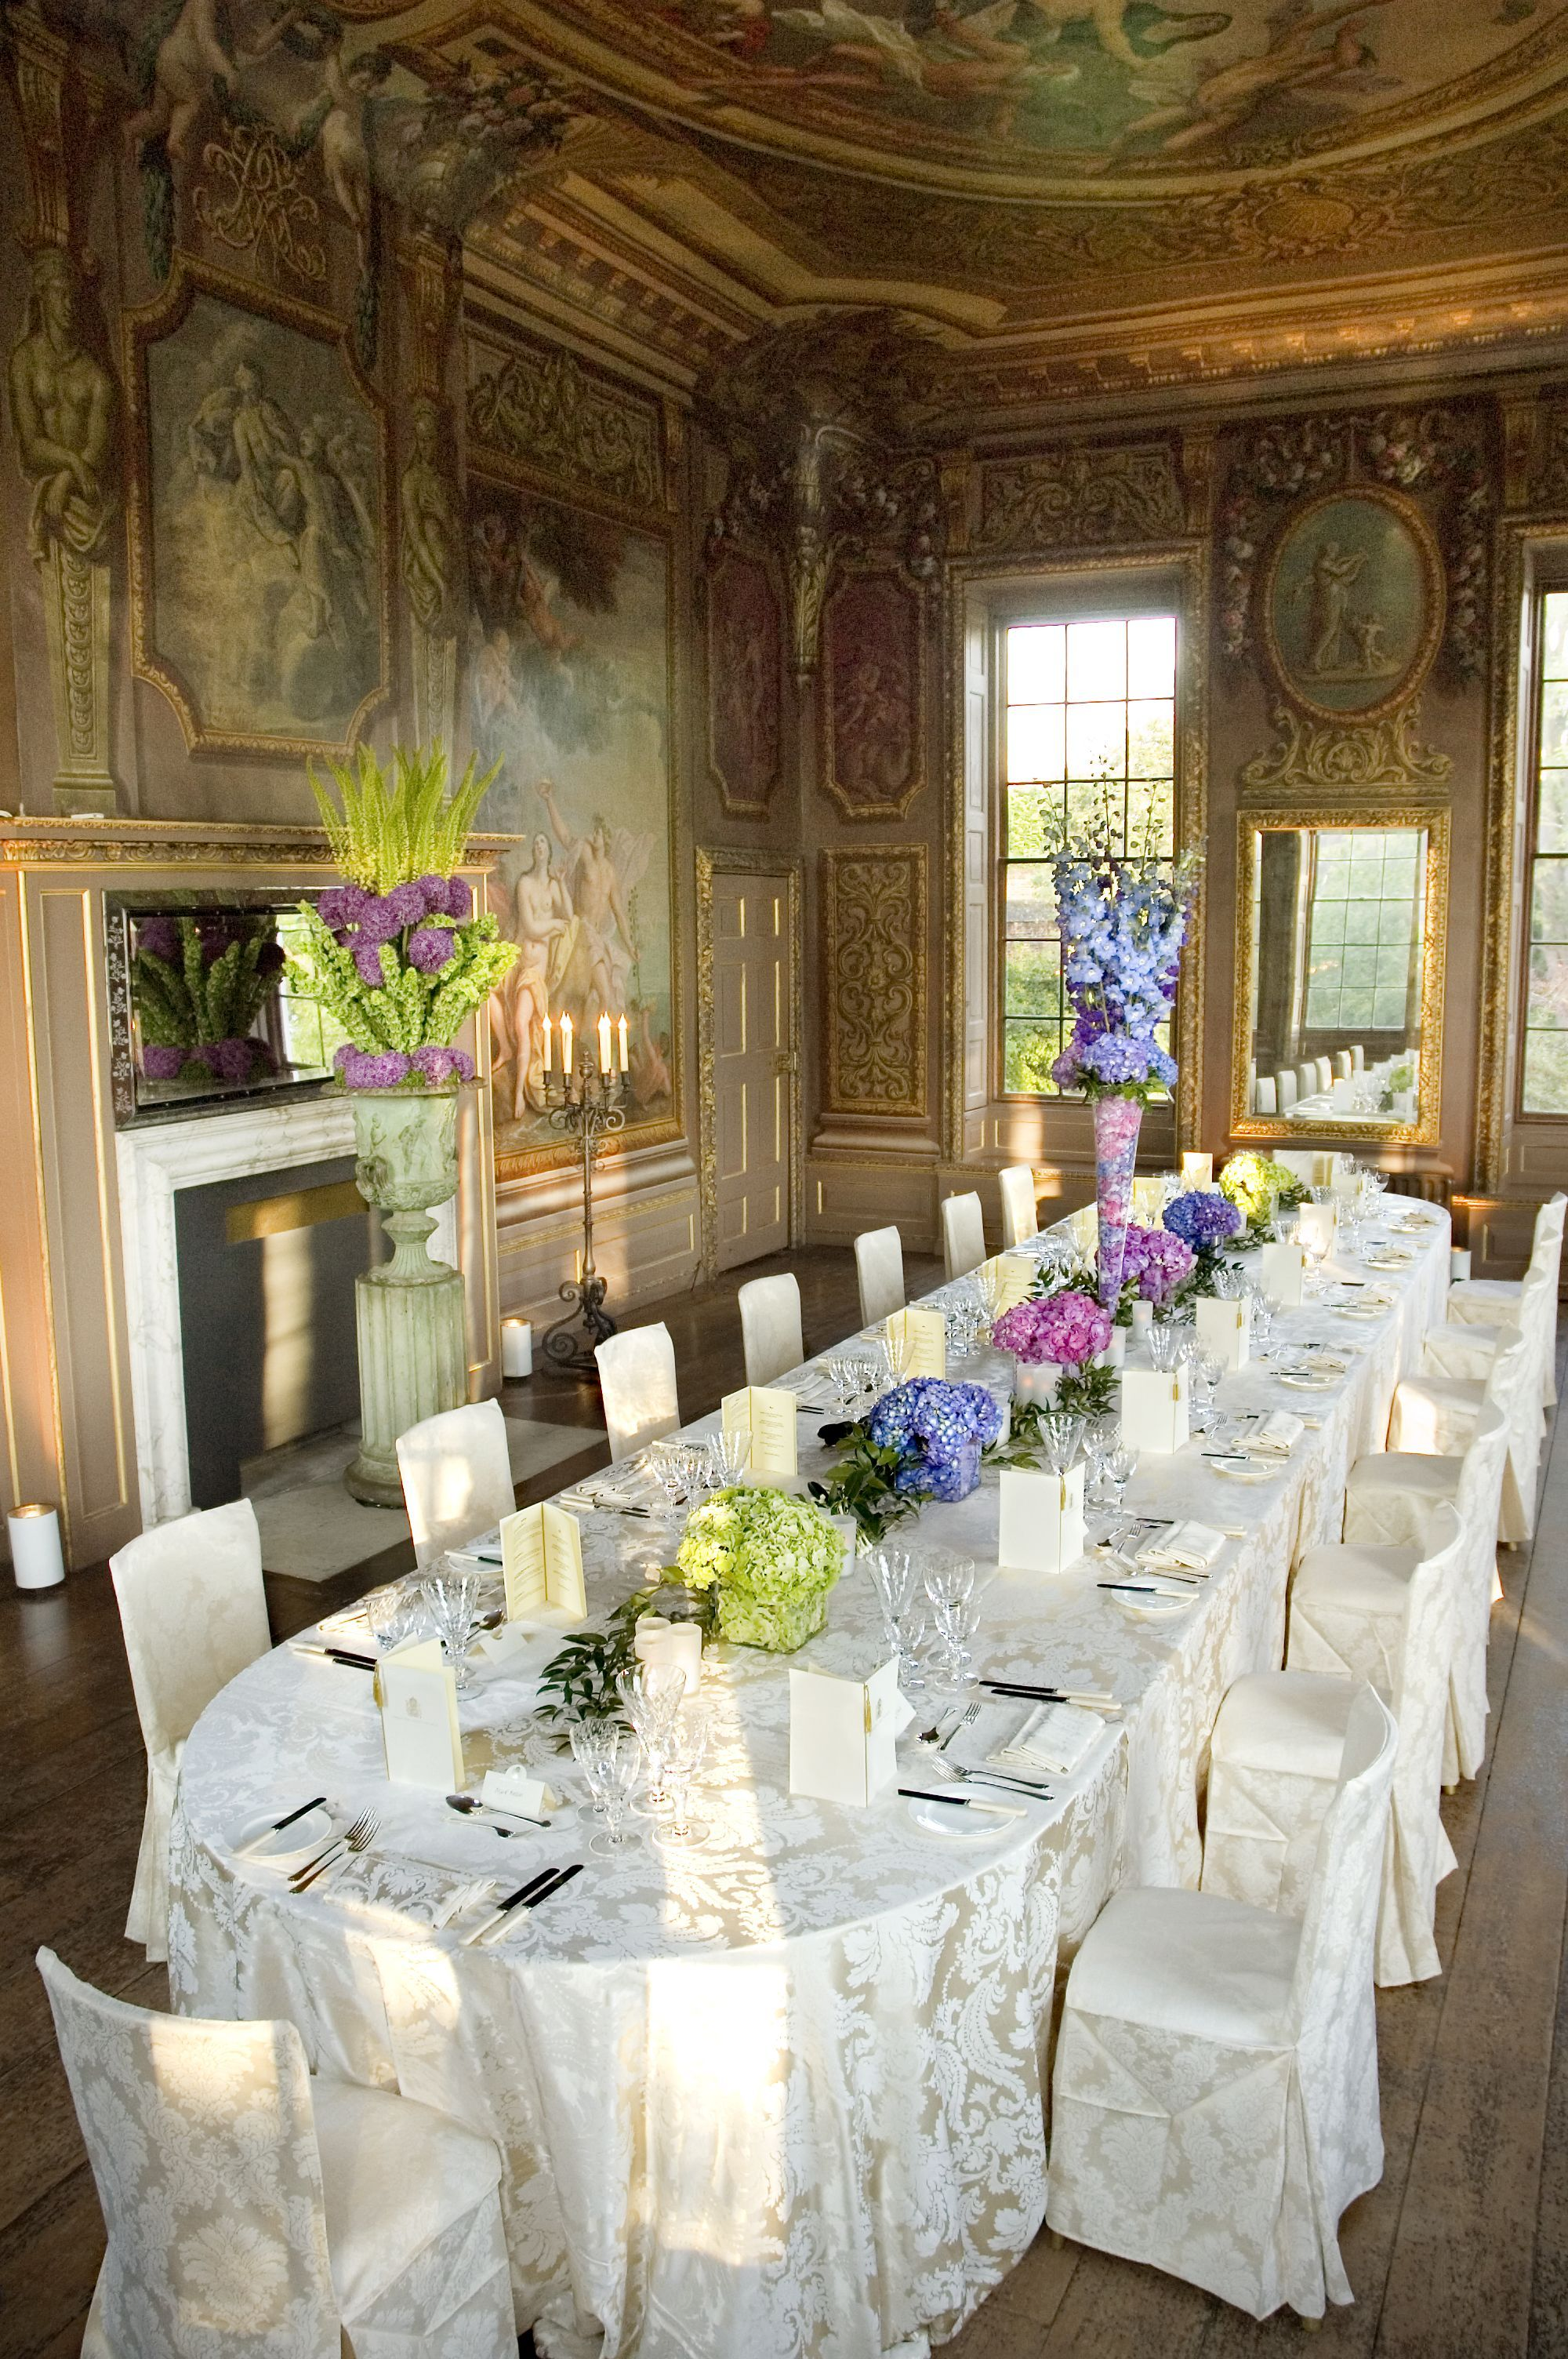 An Intimate Wedding Reception In The Little Banqueting House At Hampton Court Palace With Ivory Damask And Colourful Hyacinths